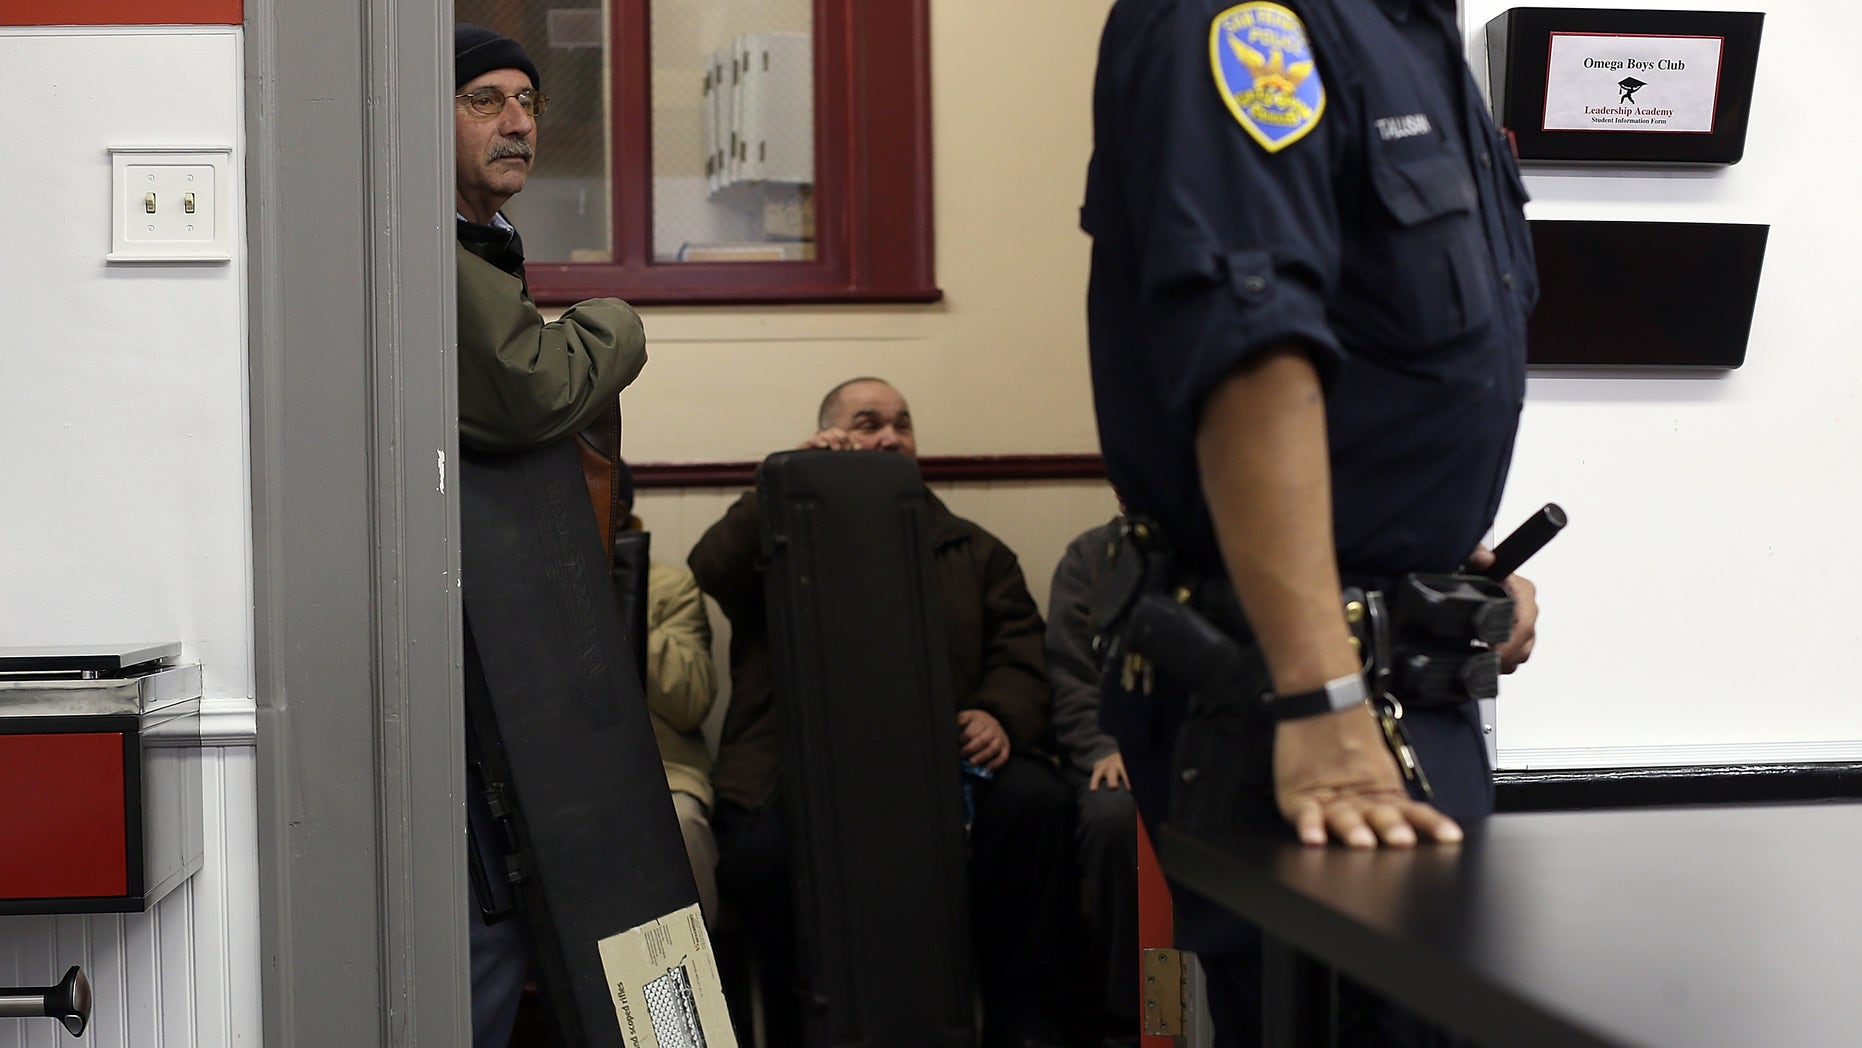 SAN FRANCISCO, CA - DECEMBER 15:  People wait in line to turn in firearms  during a gun buy back program on December 15, 2012 in San Francisco, California.  The San Francisco police department held a one-day gun buy back event that paid $200 per gun turned in. A better than expected crowd resulted in payback money running out and vouchers were issued to collect money within a week. Over 200 guns were collected.  (Photo by Justin Sullivan/Getty Images)